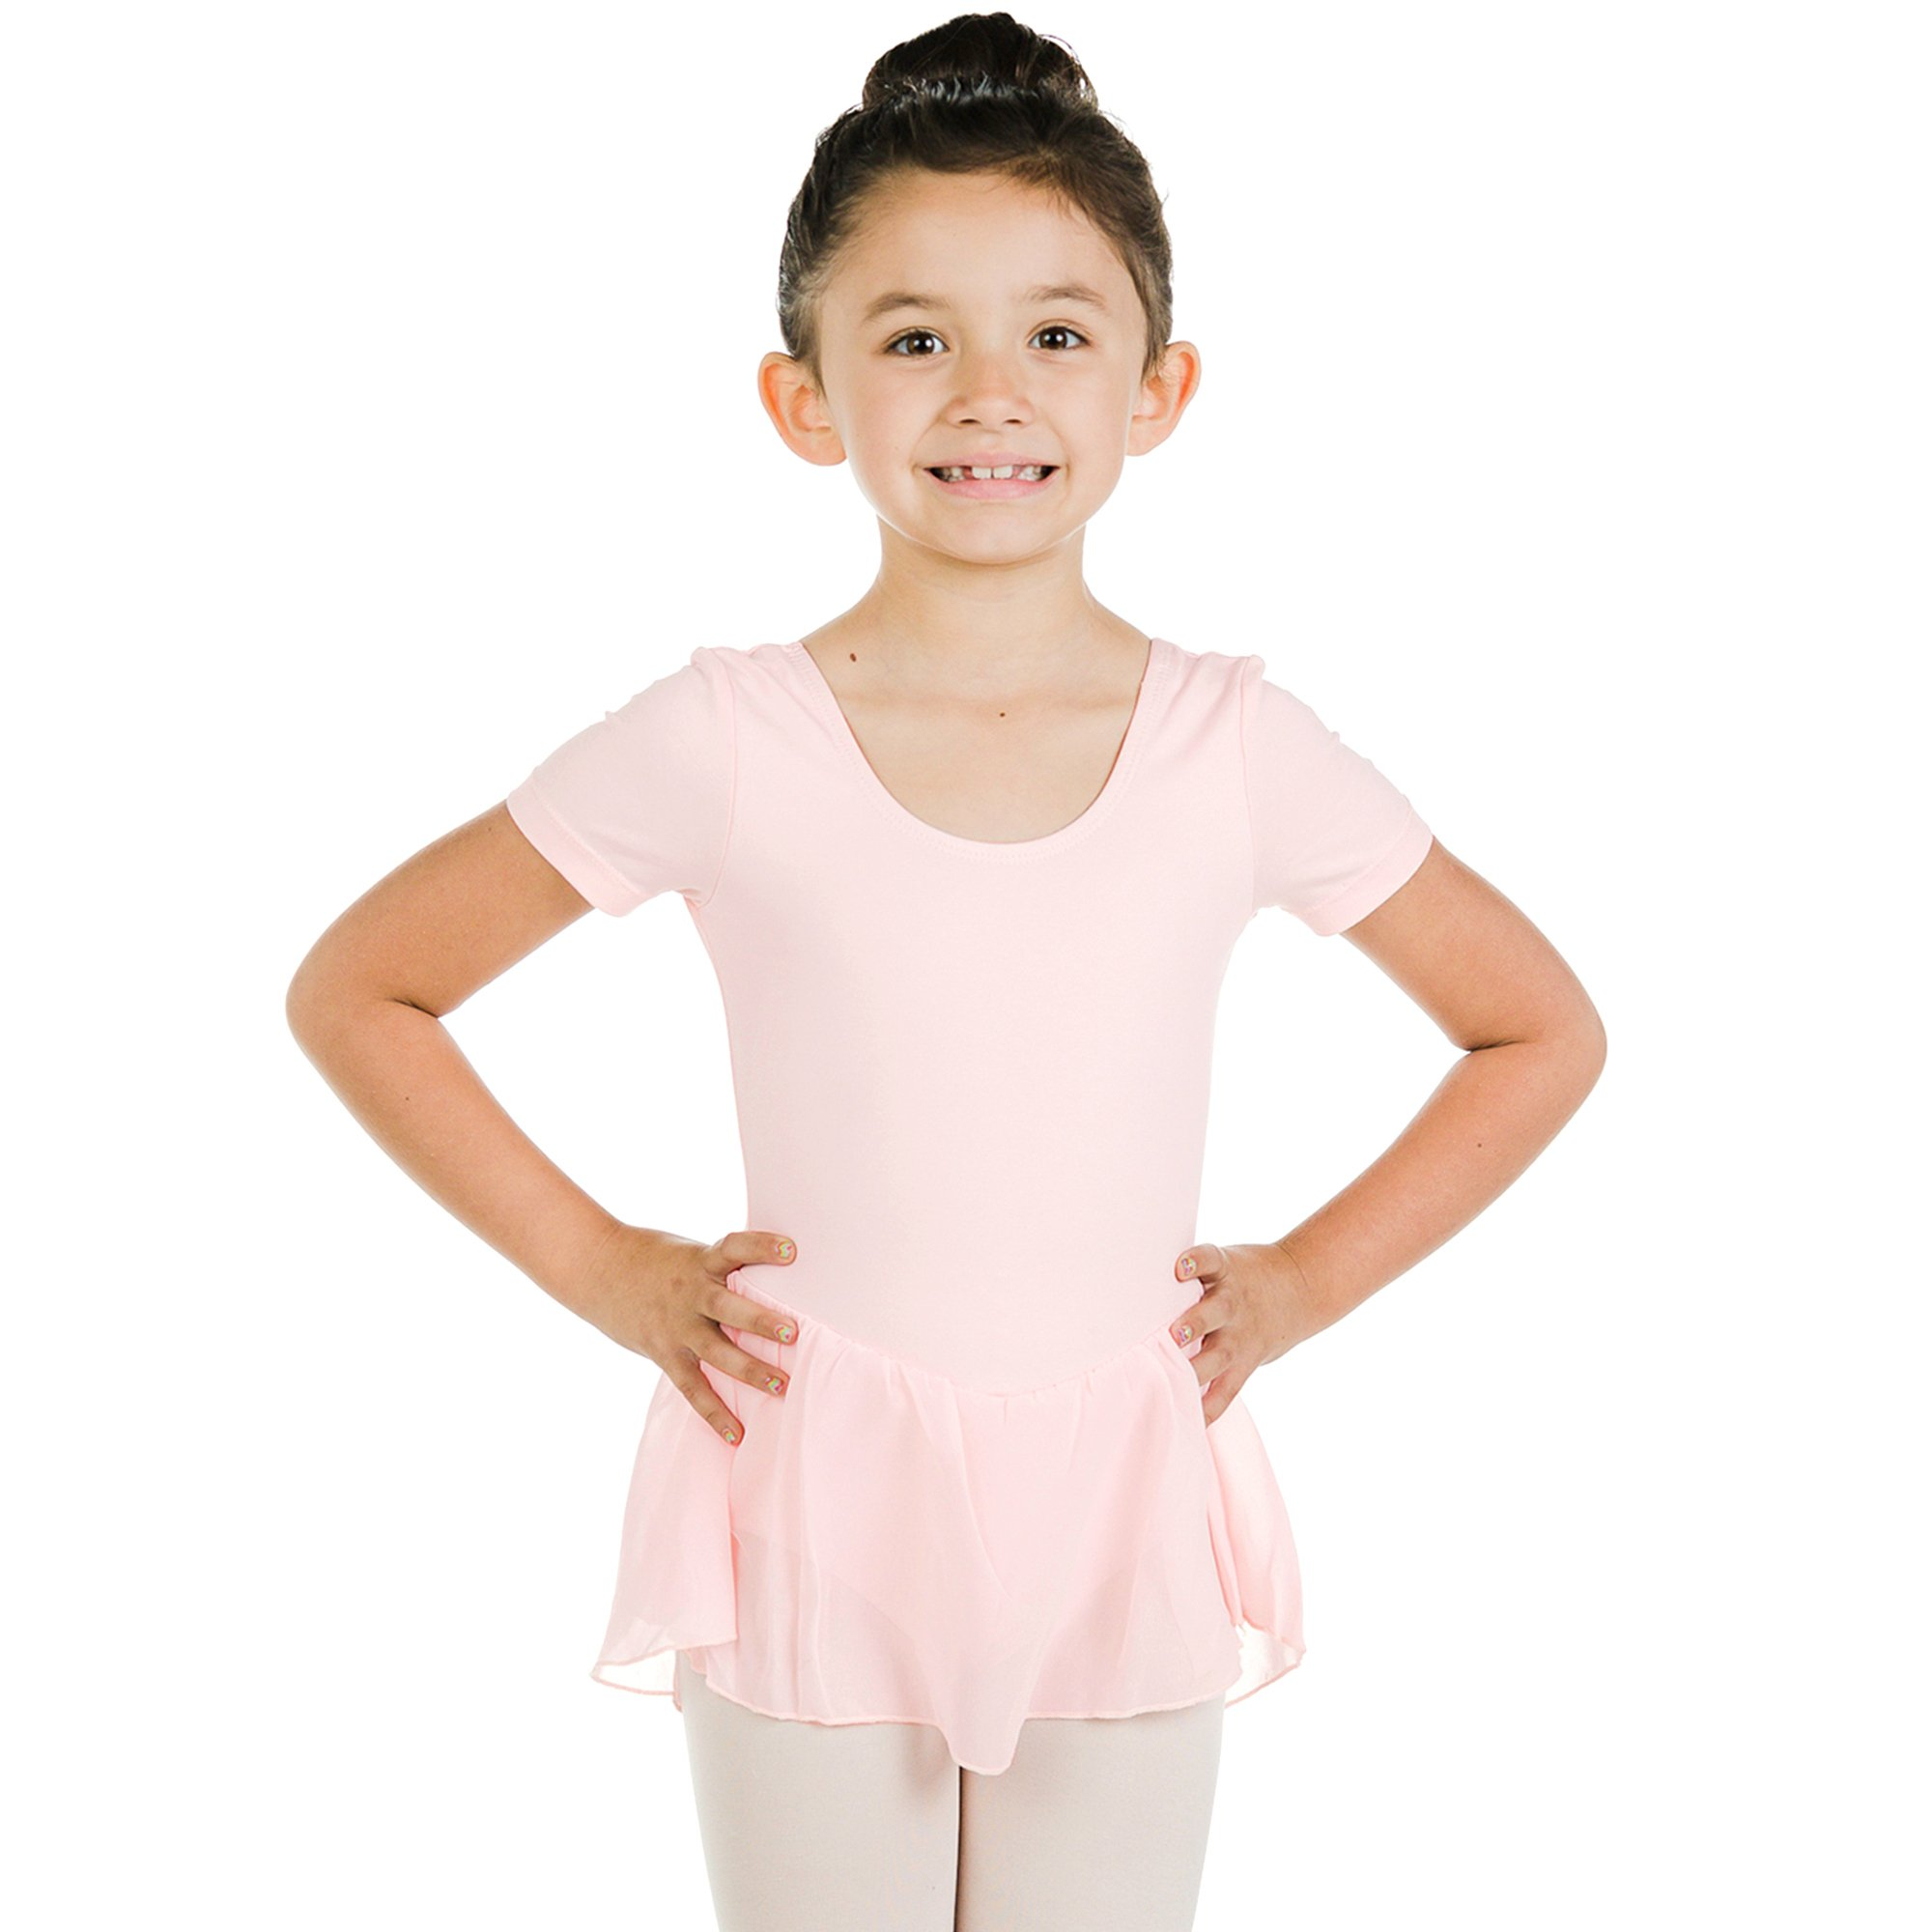 039e39d25ed Children Leotards  leotards for girls